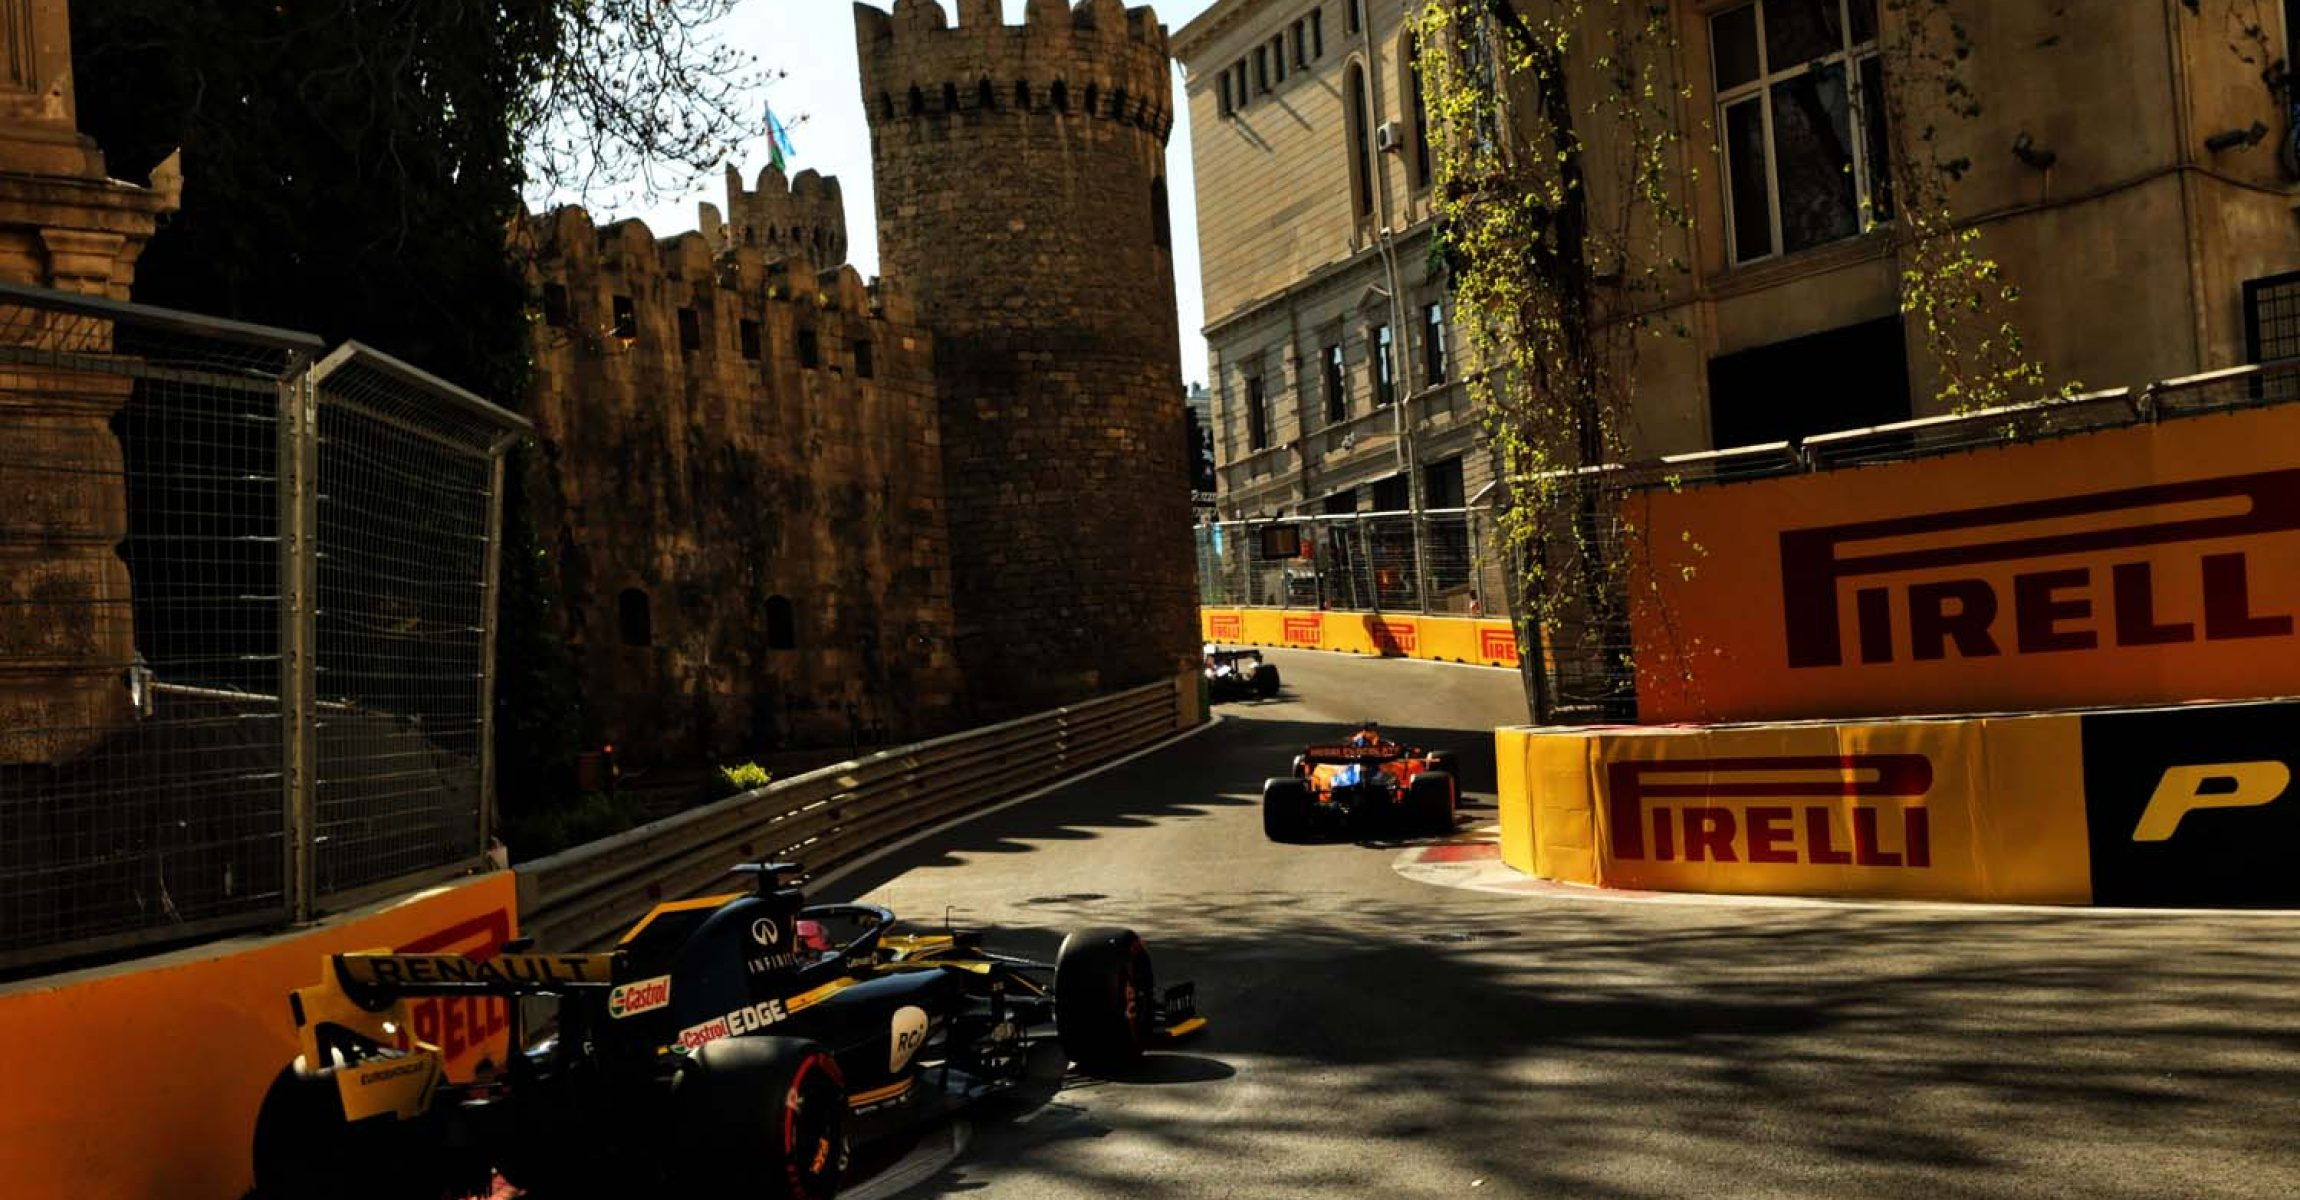 Daniel Ricciardo (AUS) Renault F1 Team RS19. Azerbaijan Grand Prix, Sunday 28th April 2019. Baku City Circuit, Azerbaijan.